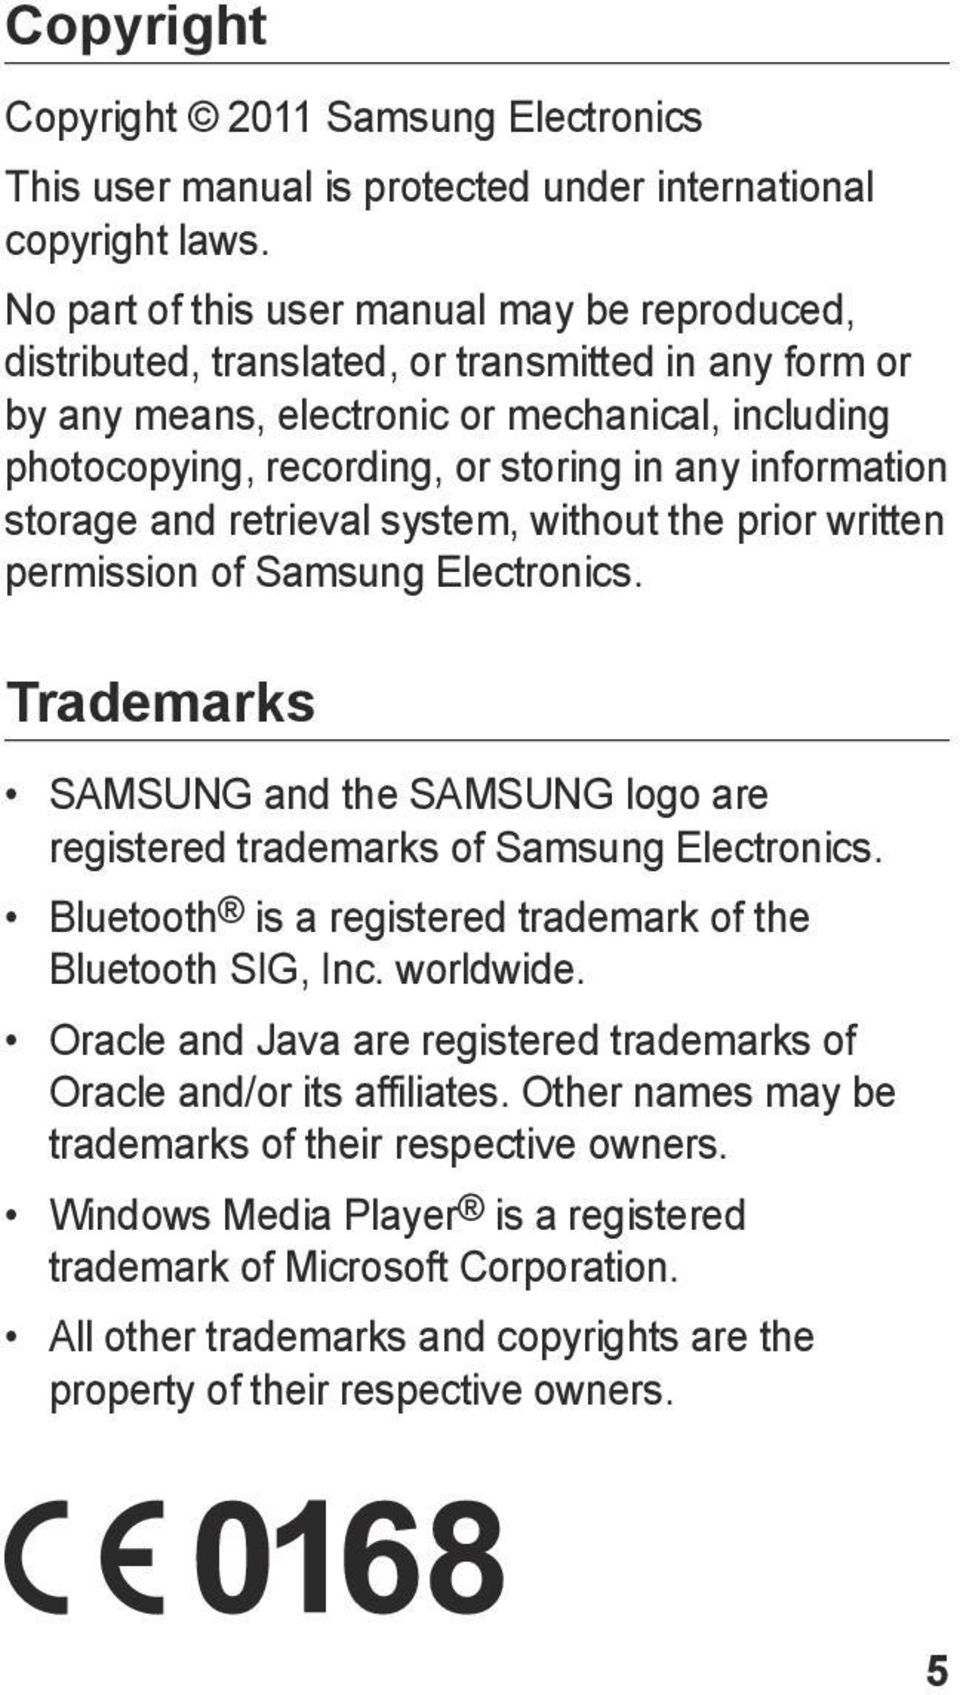 information storage and retrieval system, without the prior written permission of Samsung Electronics. Trademarks SAMSUNG and the SAMSUNG logo are registered trademarks of Samsung Electronics.